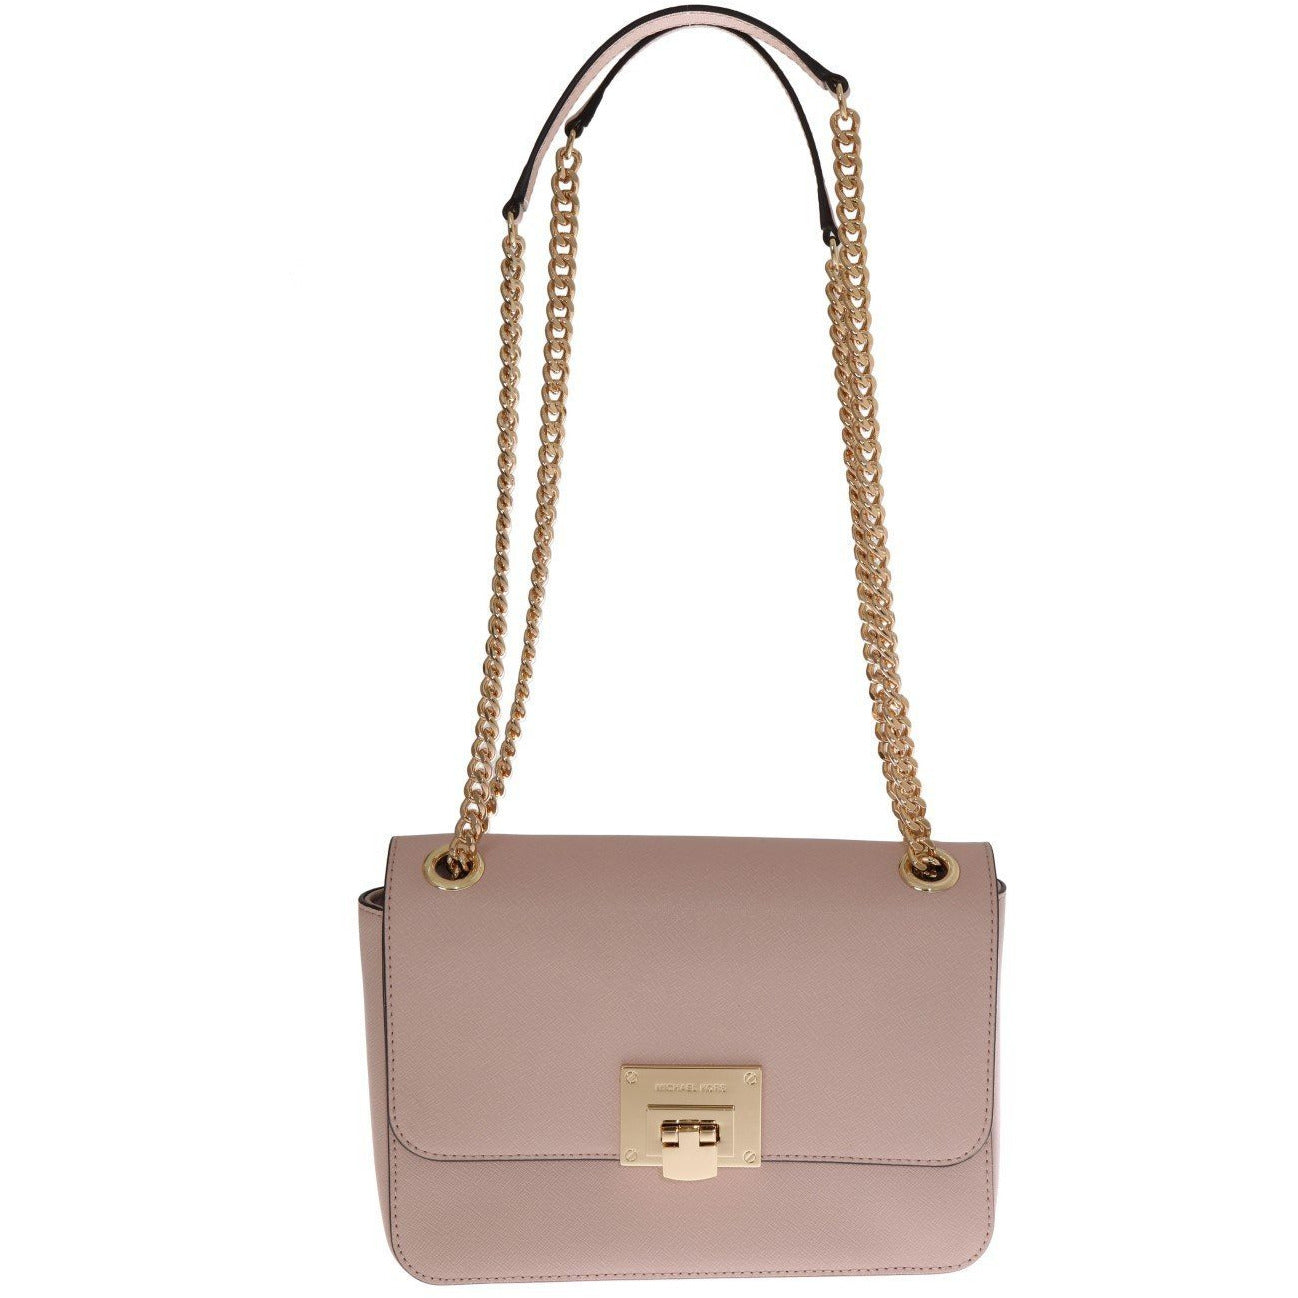 Pink TINA Leather Shoulder Bag Michael Kors